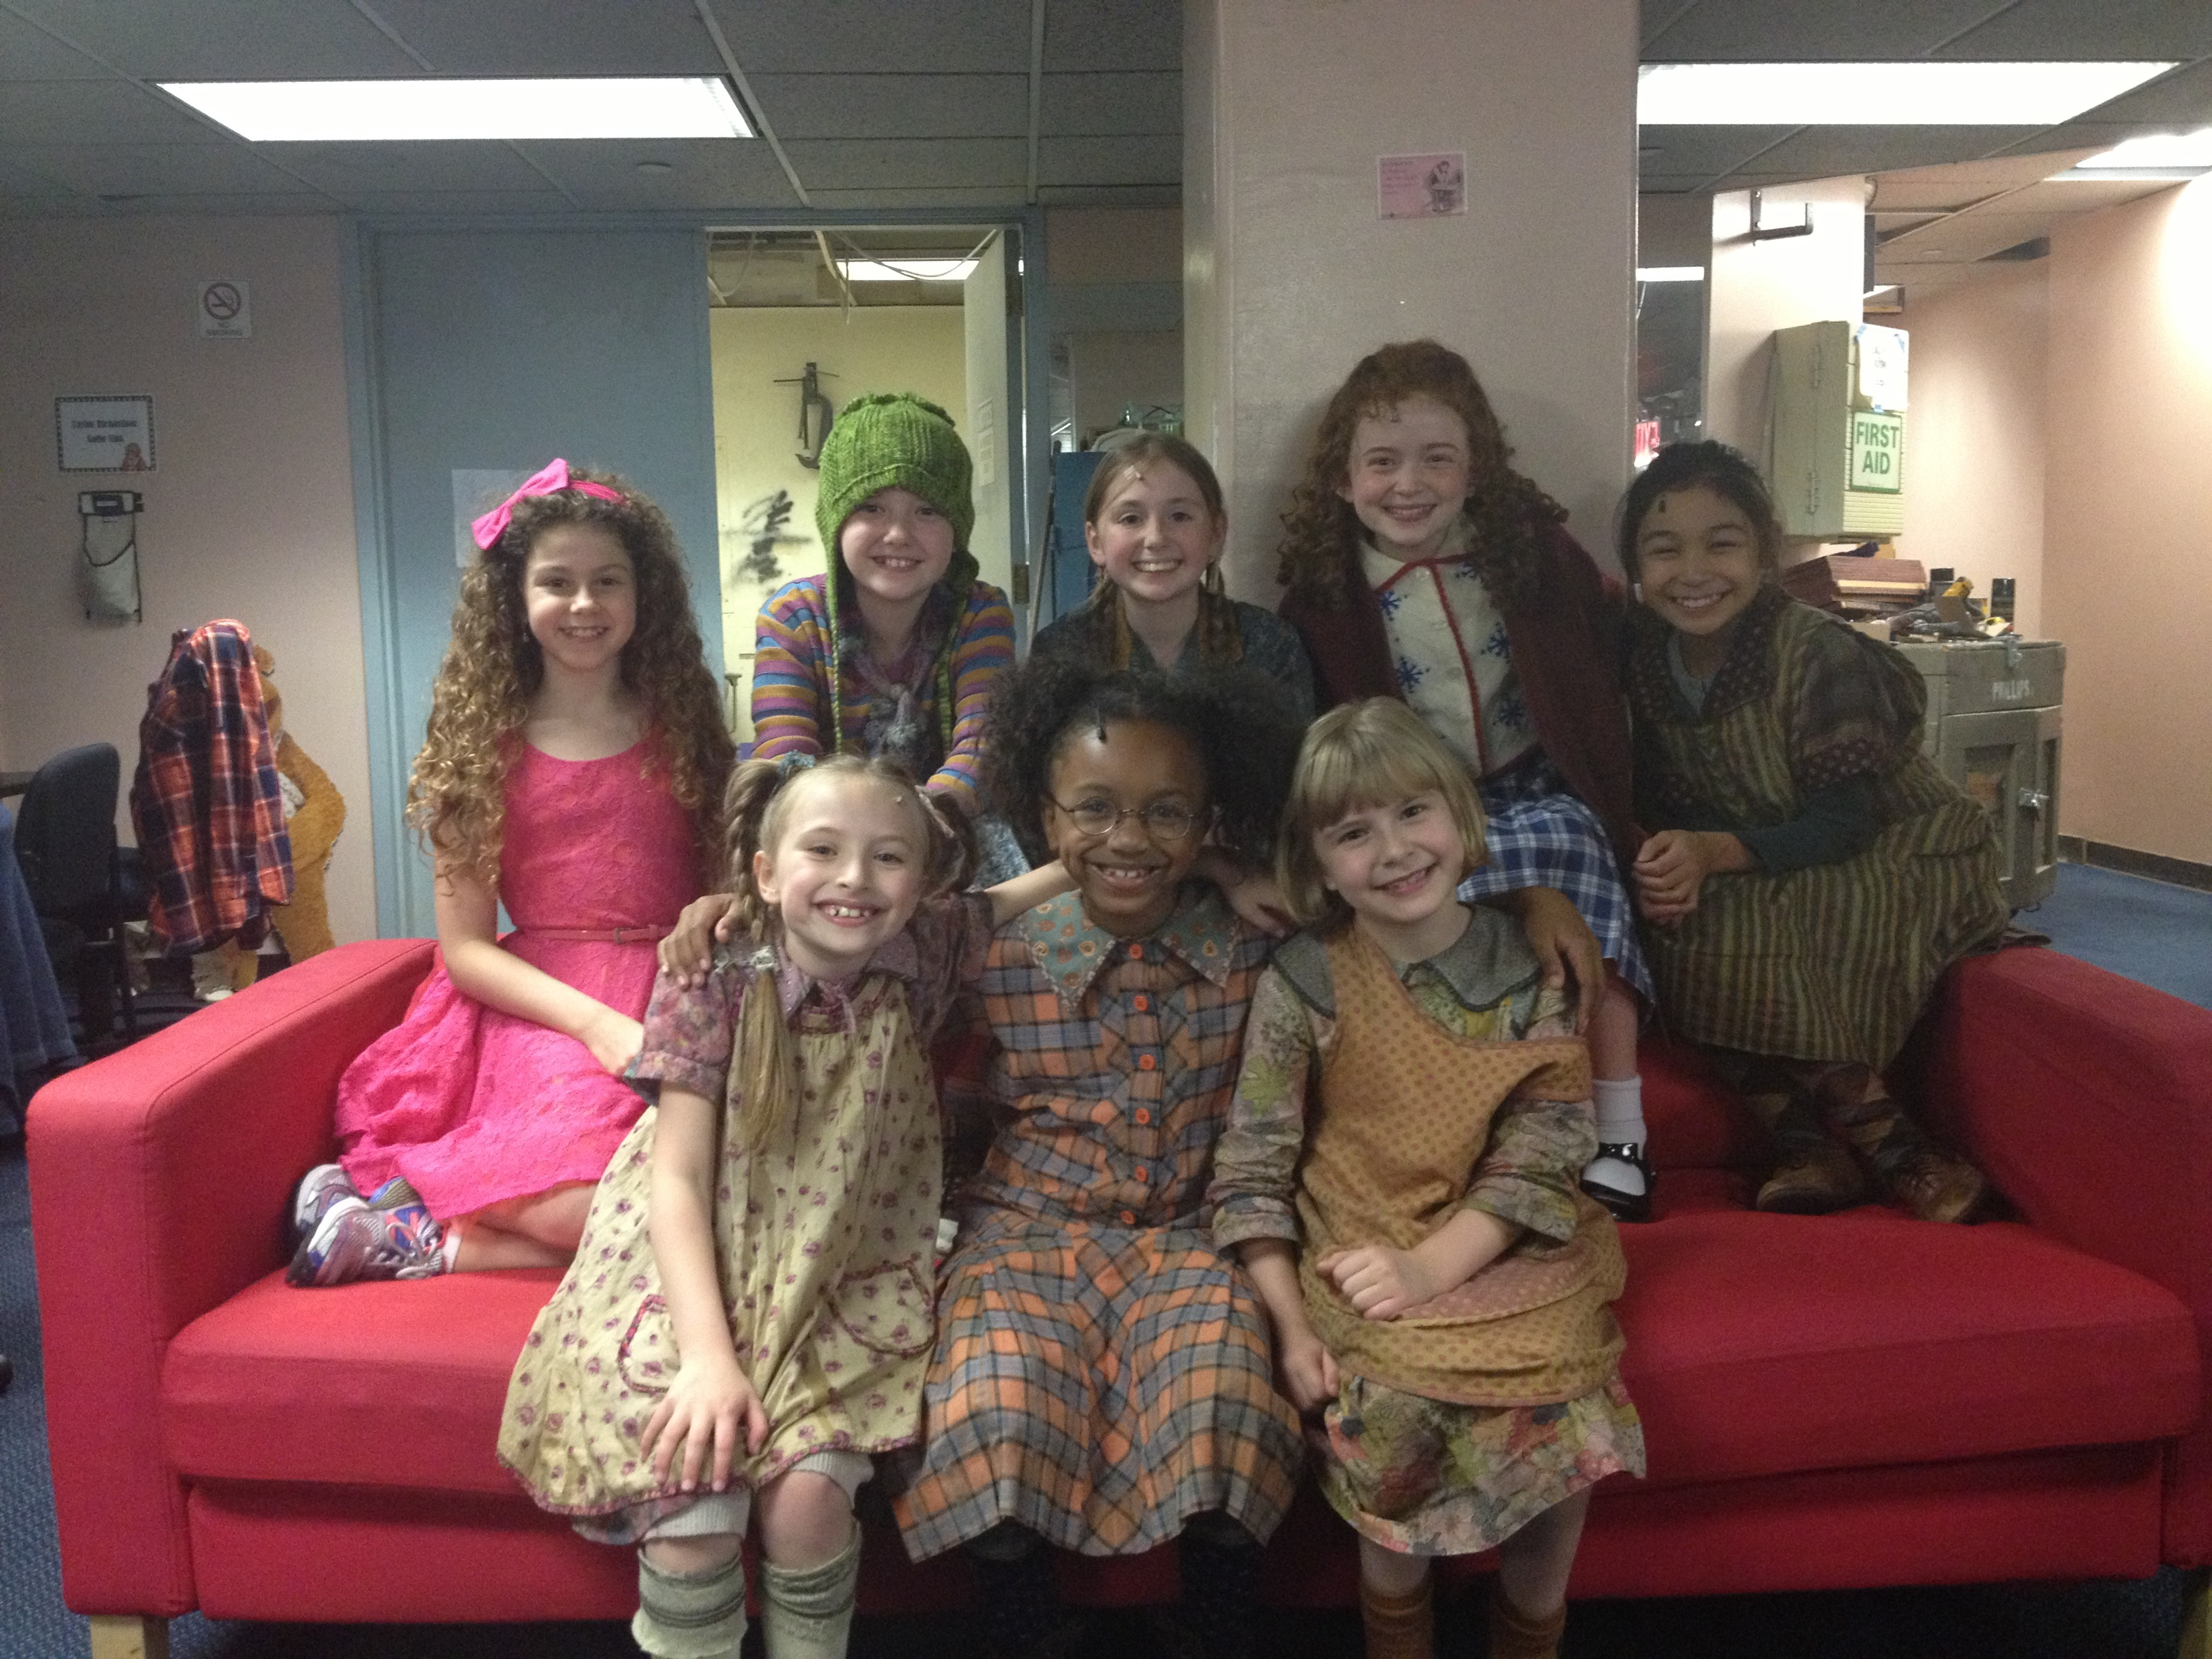 Annie Orphans Reign at the Palace - 2216.3KB